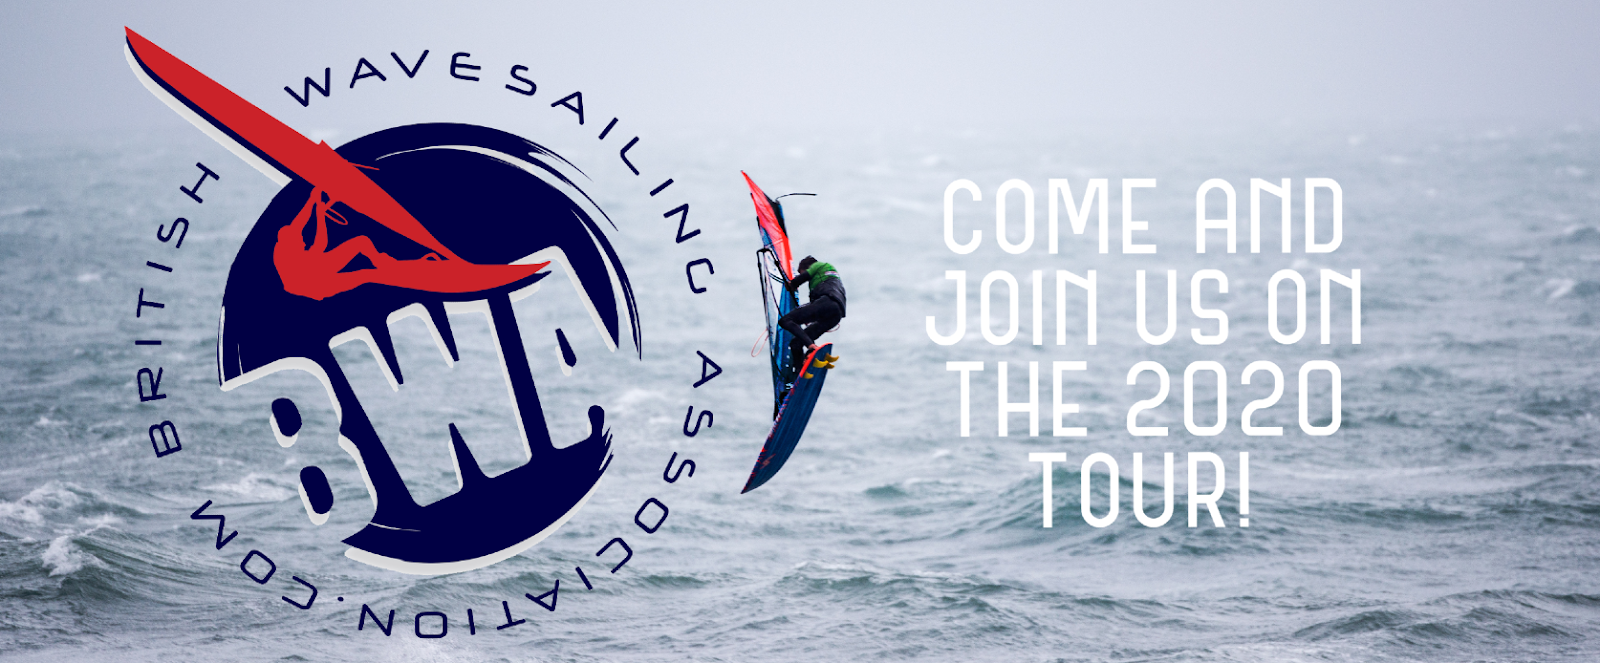 British Wavesailing Association